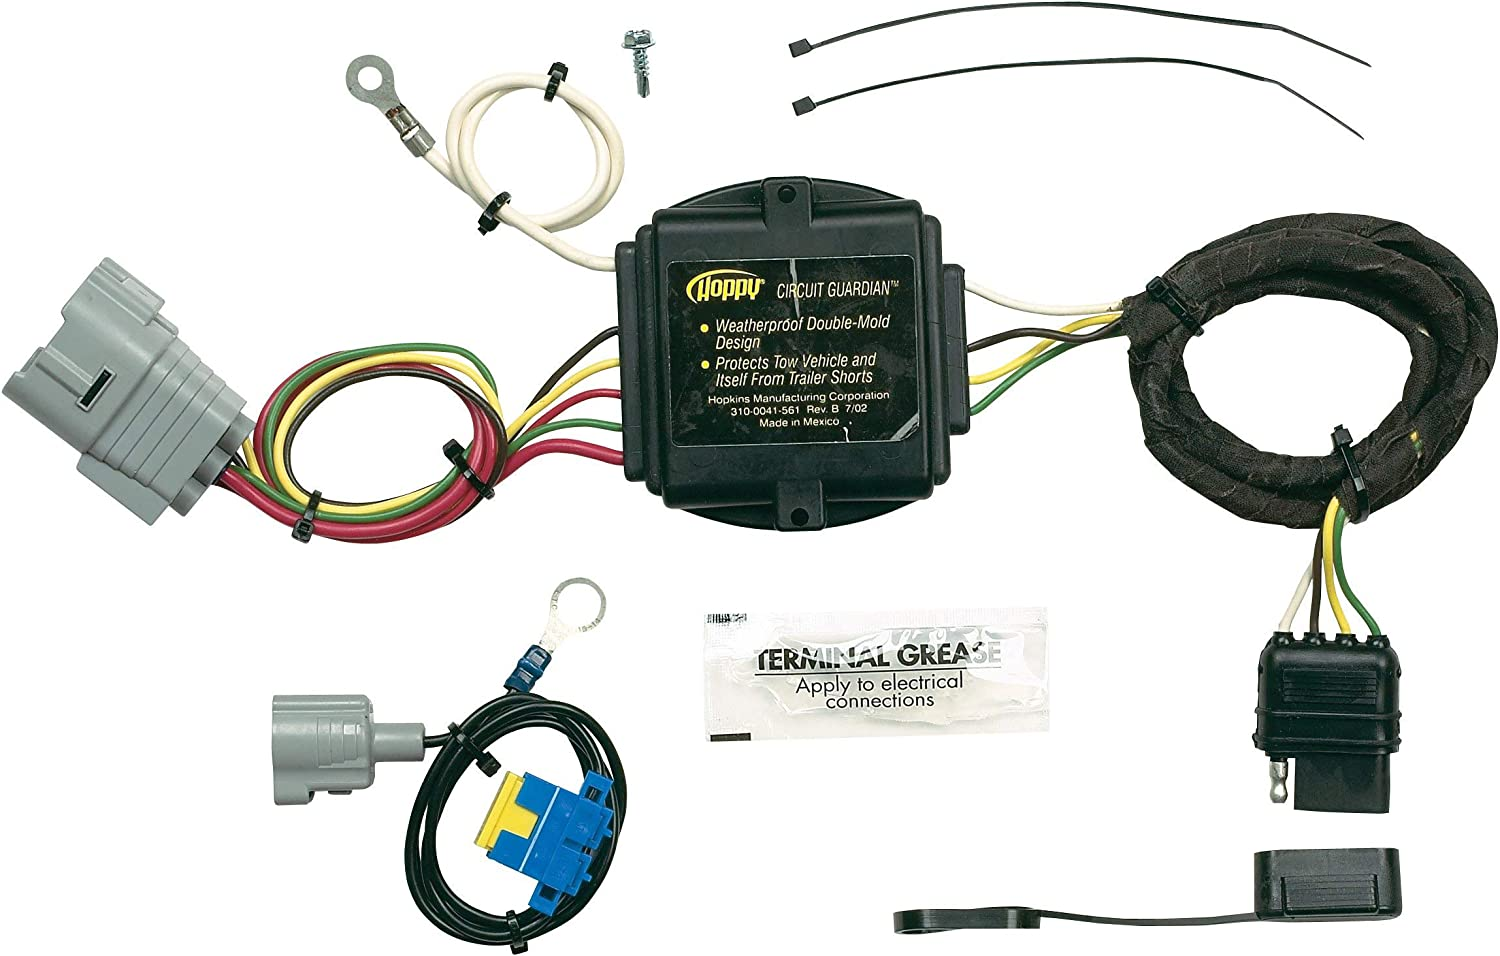 2002 Toyota Tundra Trailer Wiring Harness from images-na.ssl-images-amazon.com